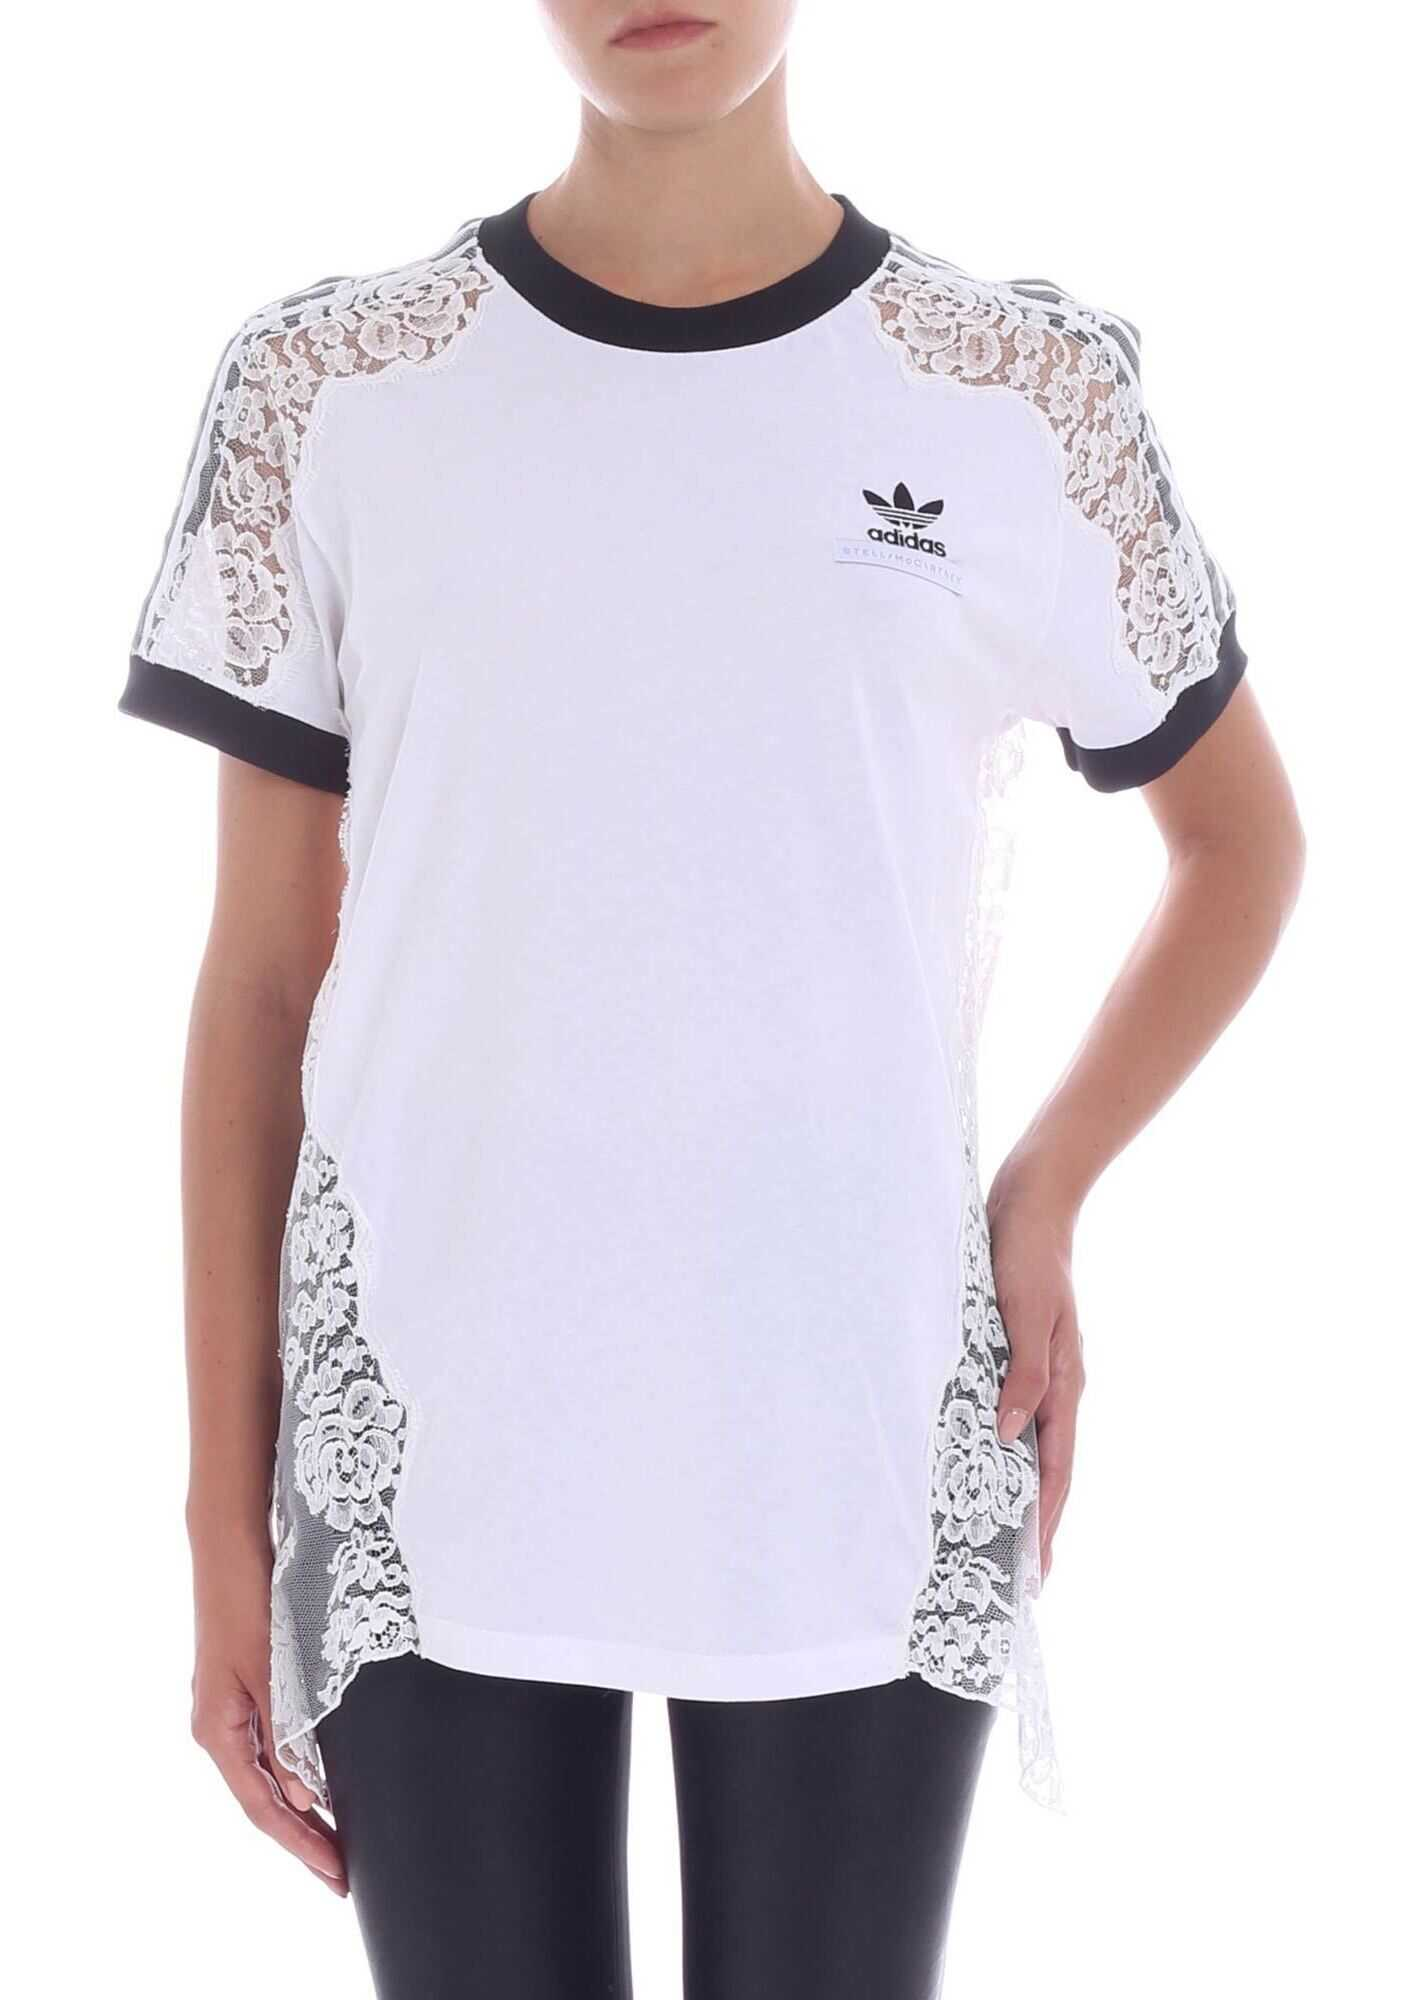 adidas by Stella McCartney White T-Shirt With Lace Inserts White